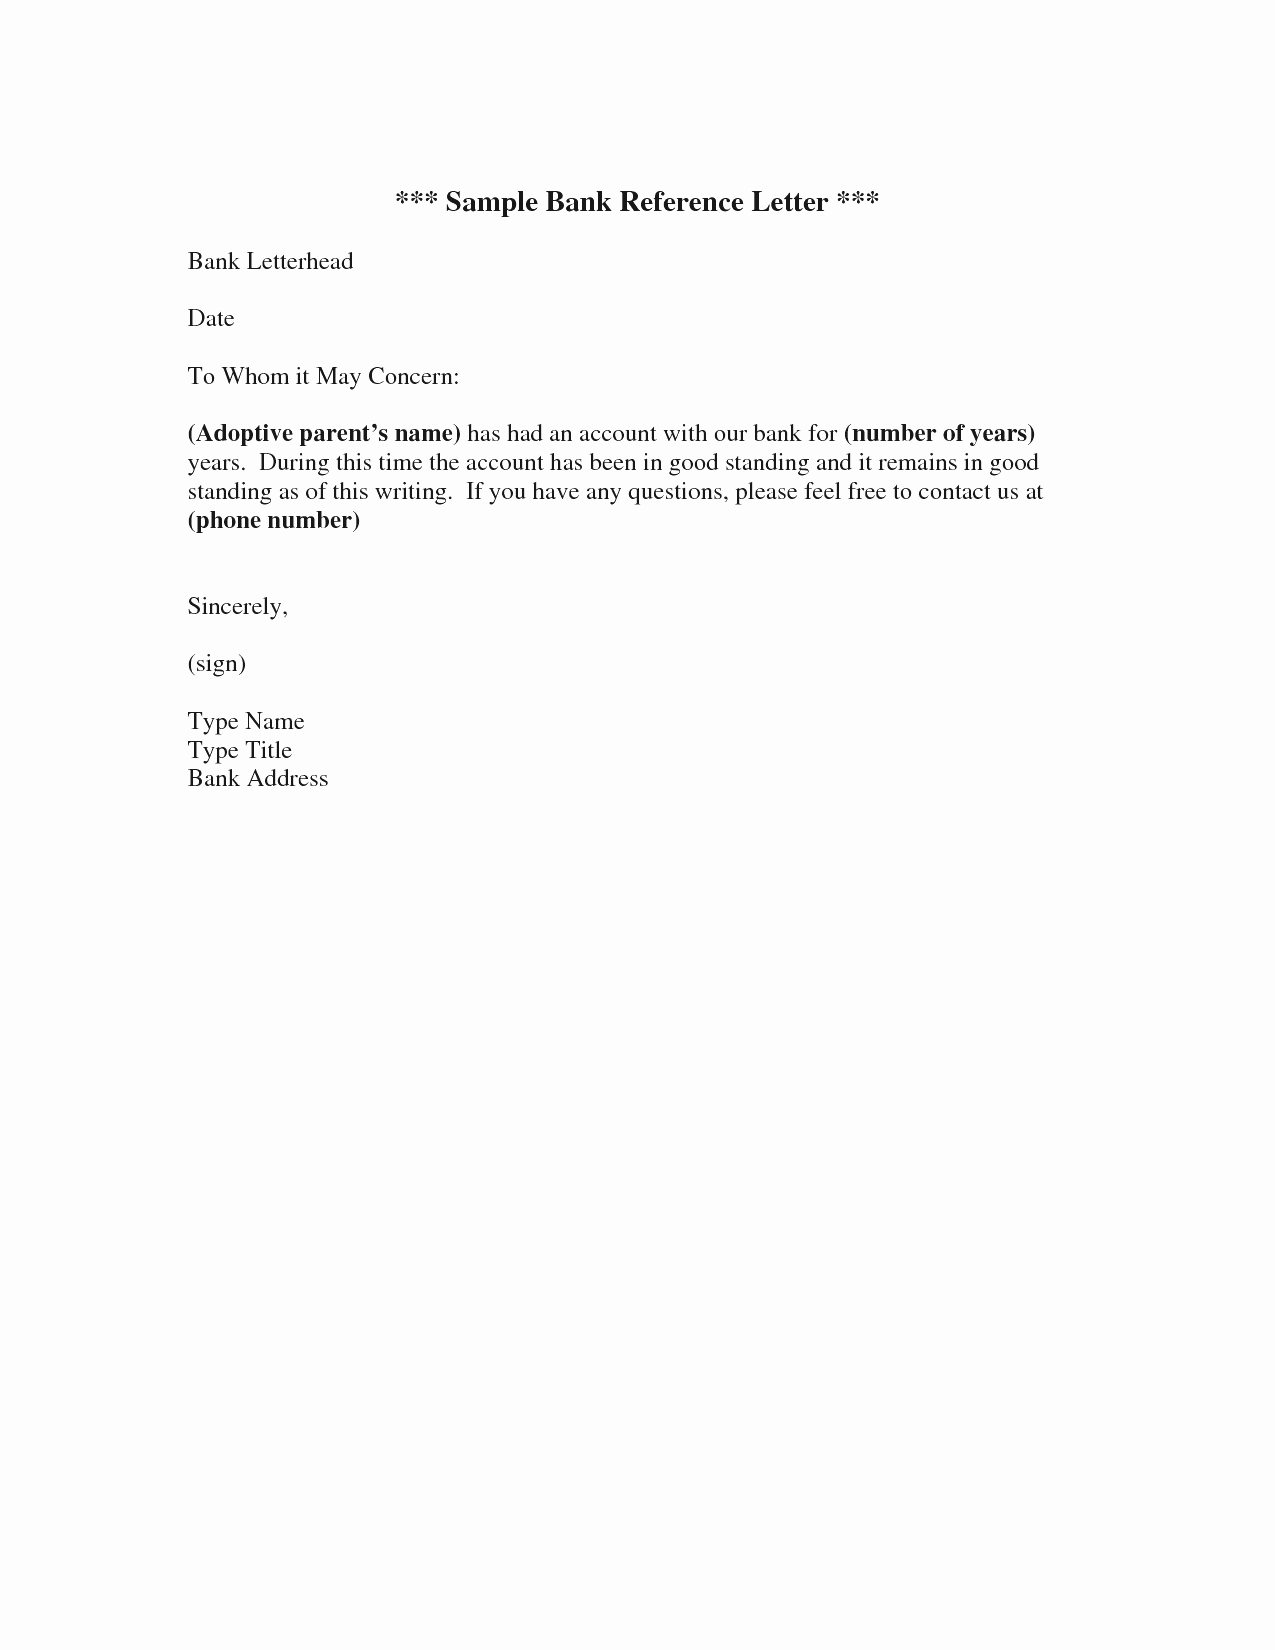 Recommendation Letter for Job Template New Business Reference Letter Template Example Mughals